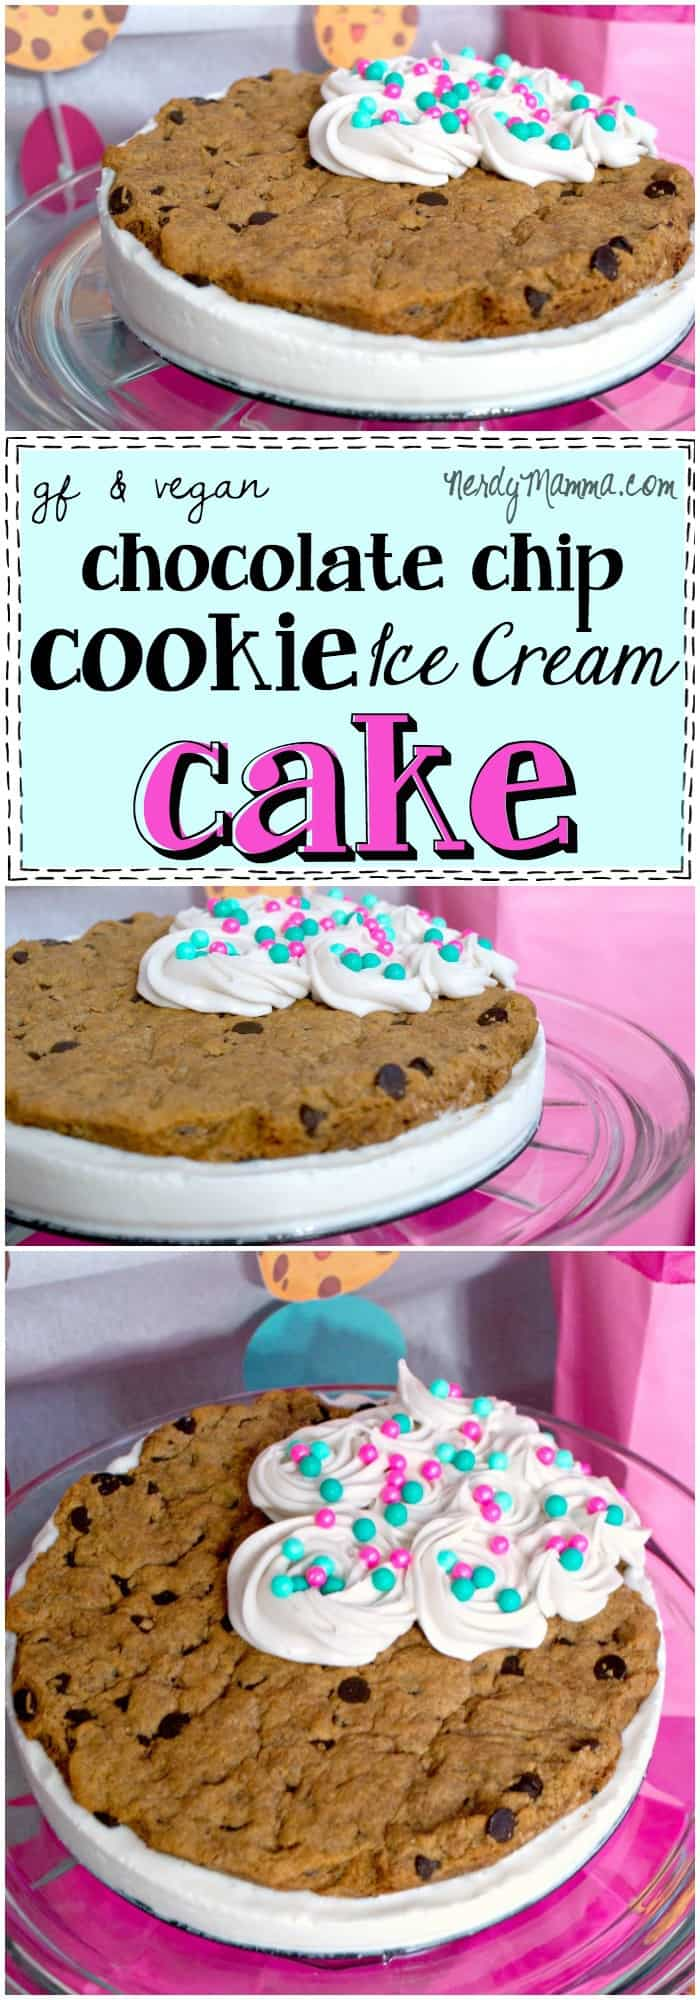 This dairy-free, egg-free, gluten-free, vegan, awesomeness is a total mind-blower. Who knew that you could have a Chocolate Chip Ice Cream Cake so easily! LOVE IT!